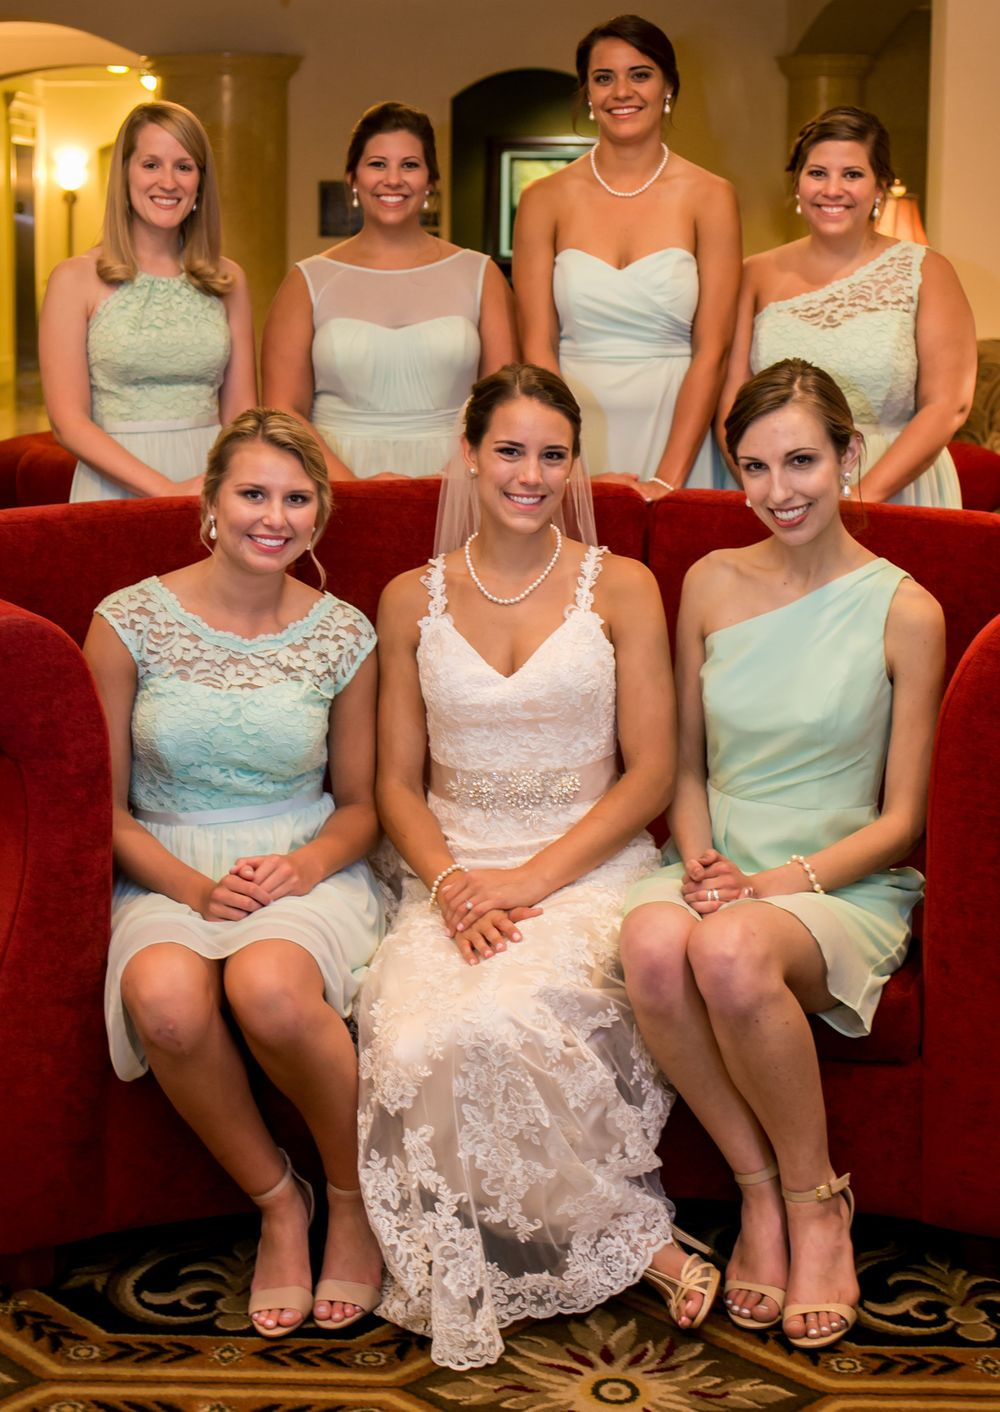 Bride Alex and her bridesmaids sit on a couch before a wedding ceremony at Incarnation Lutheran Church in Columbia, SC